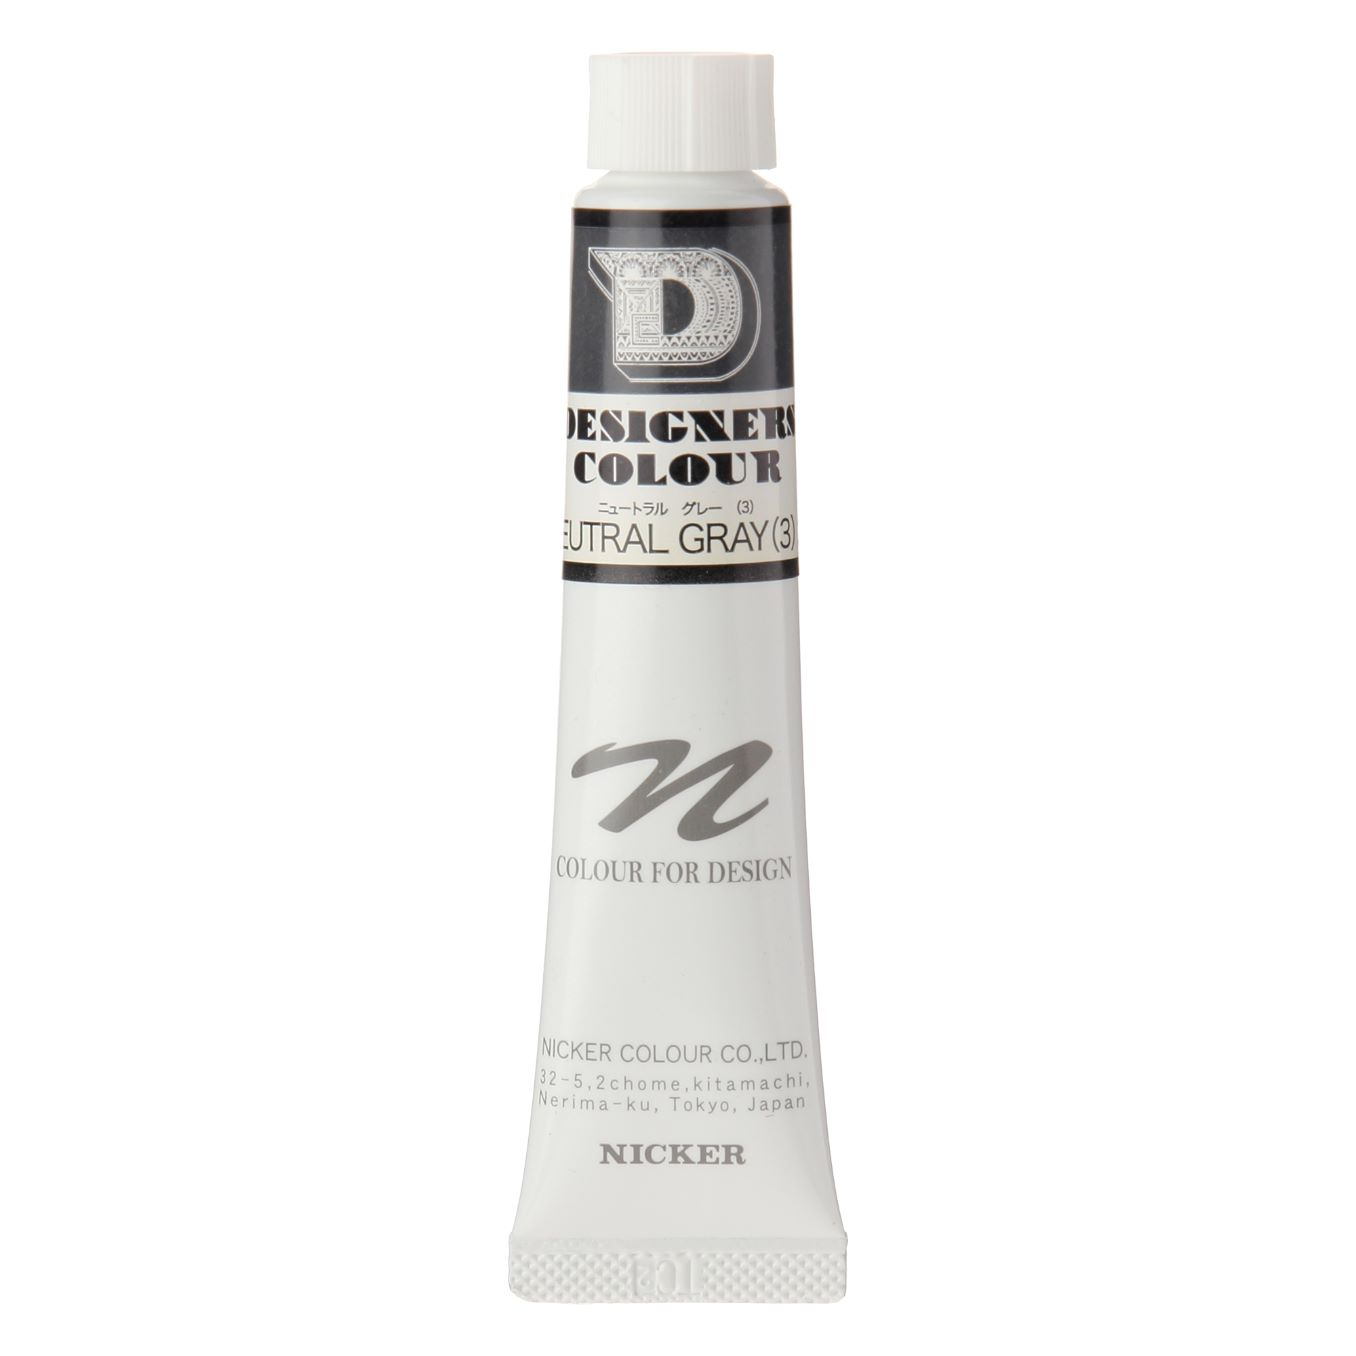 DESIGNERS COLOUR 20ml 598 NEUTRAL GRAY(3)